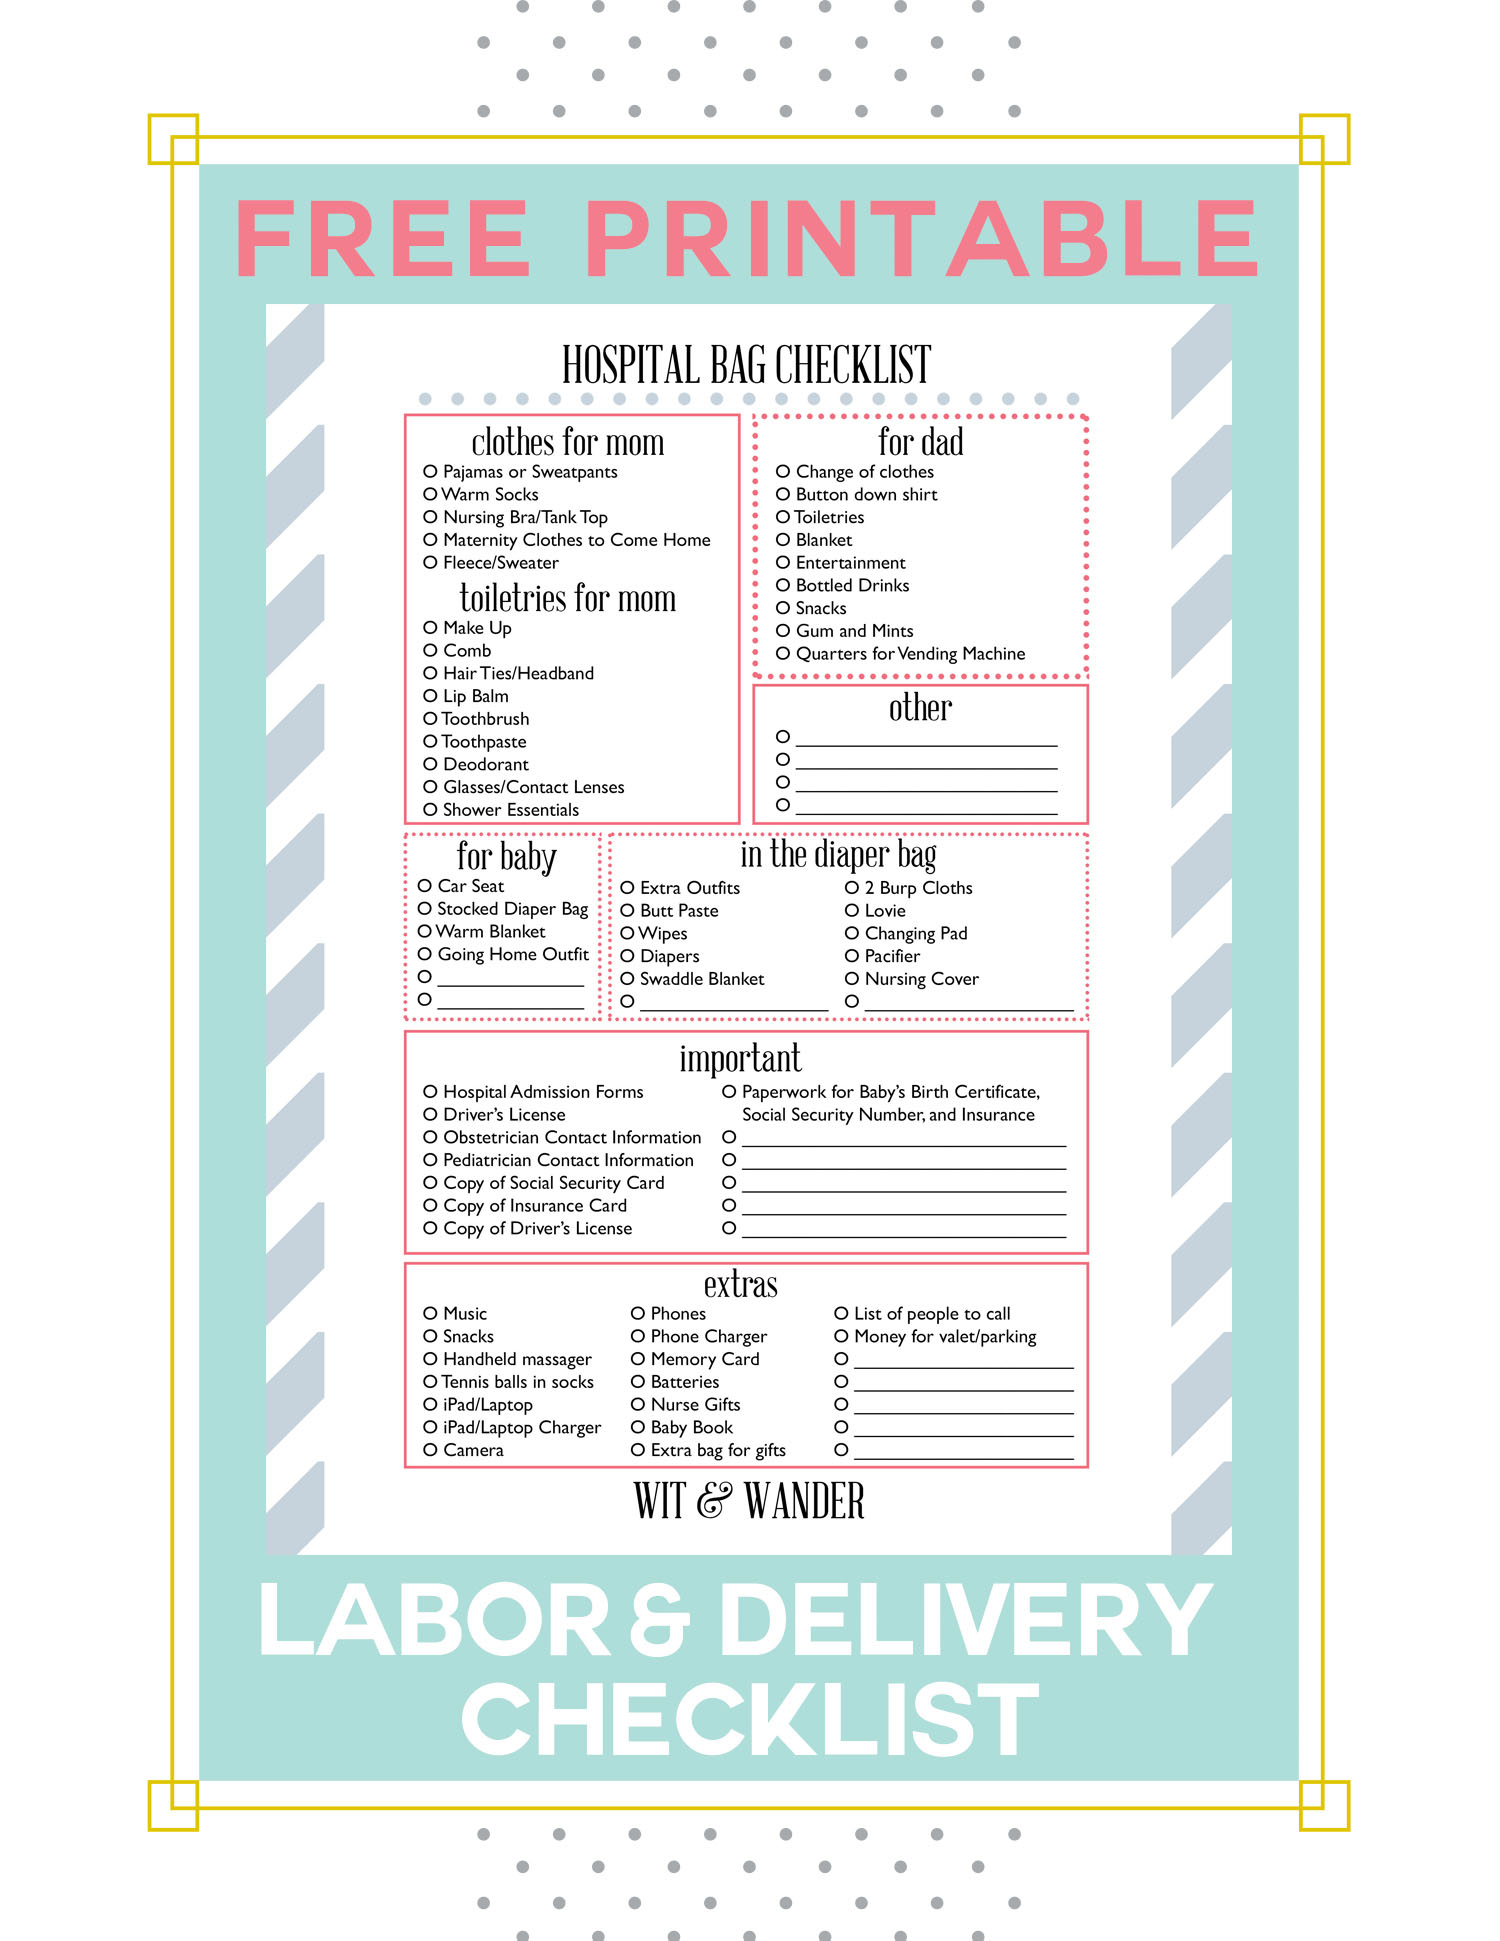 Free Printable Labor And Delivery Hospital Bag Ng Checklist Wit Wander